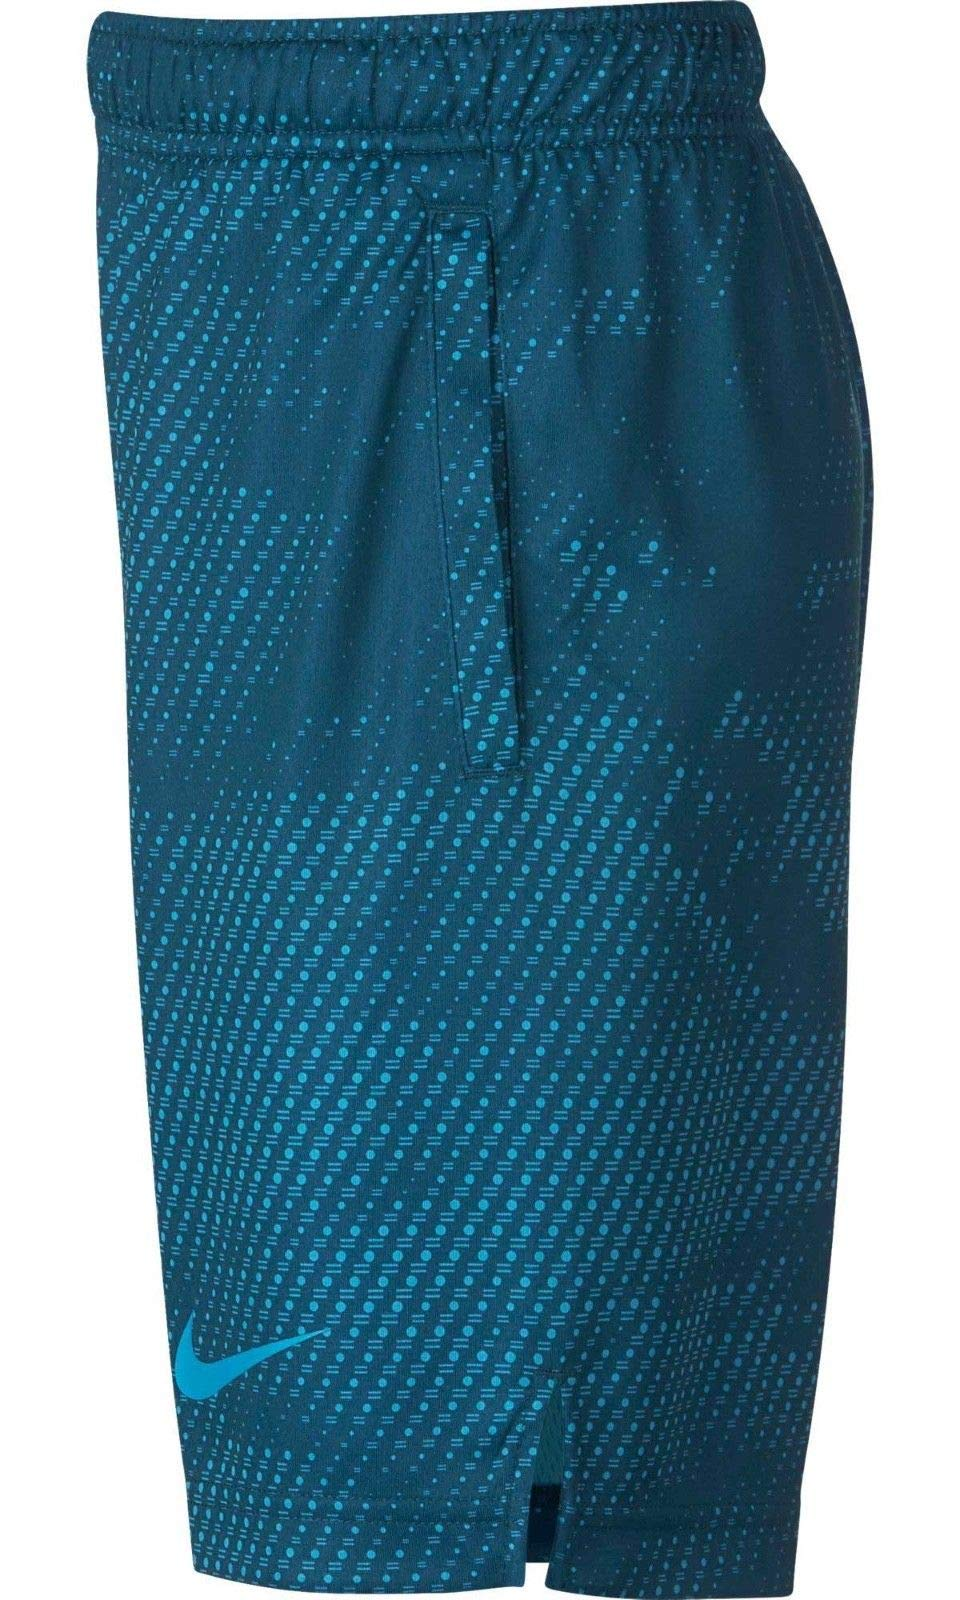 NIKE Boy's Dry Printed Fly Training Shorts (Blue Force, Small) by Nike (Image #3)